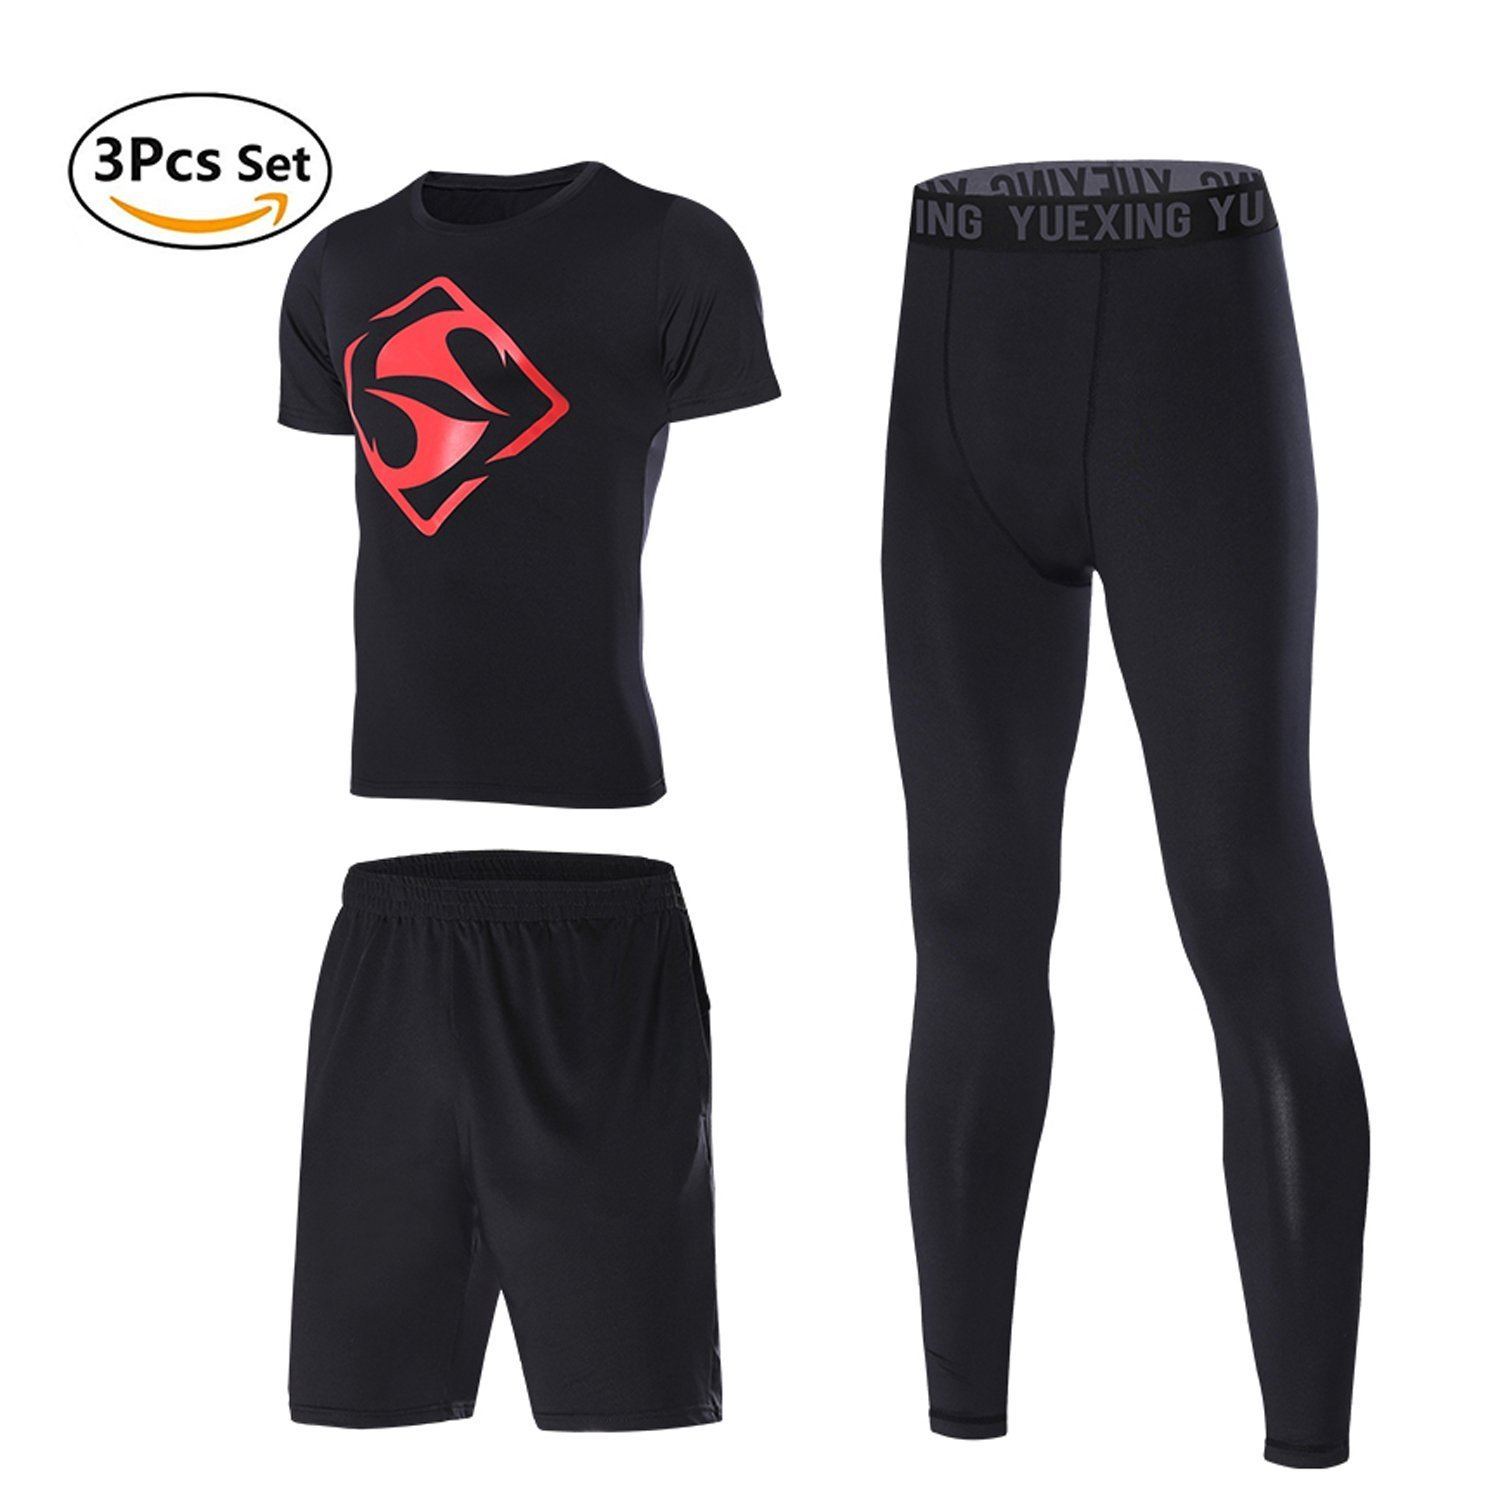 3 Pcs Men's Workout Clothes Set with Compression Pants Sweat-Wicking Shirt and Loose Fitting Shorts Black/M